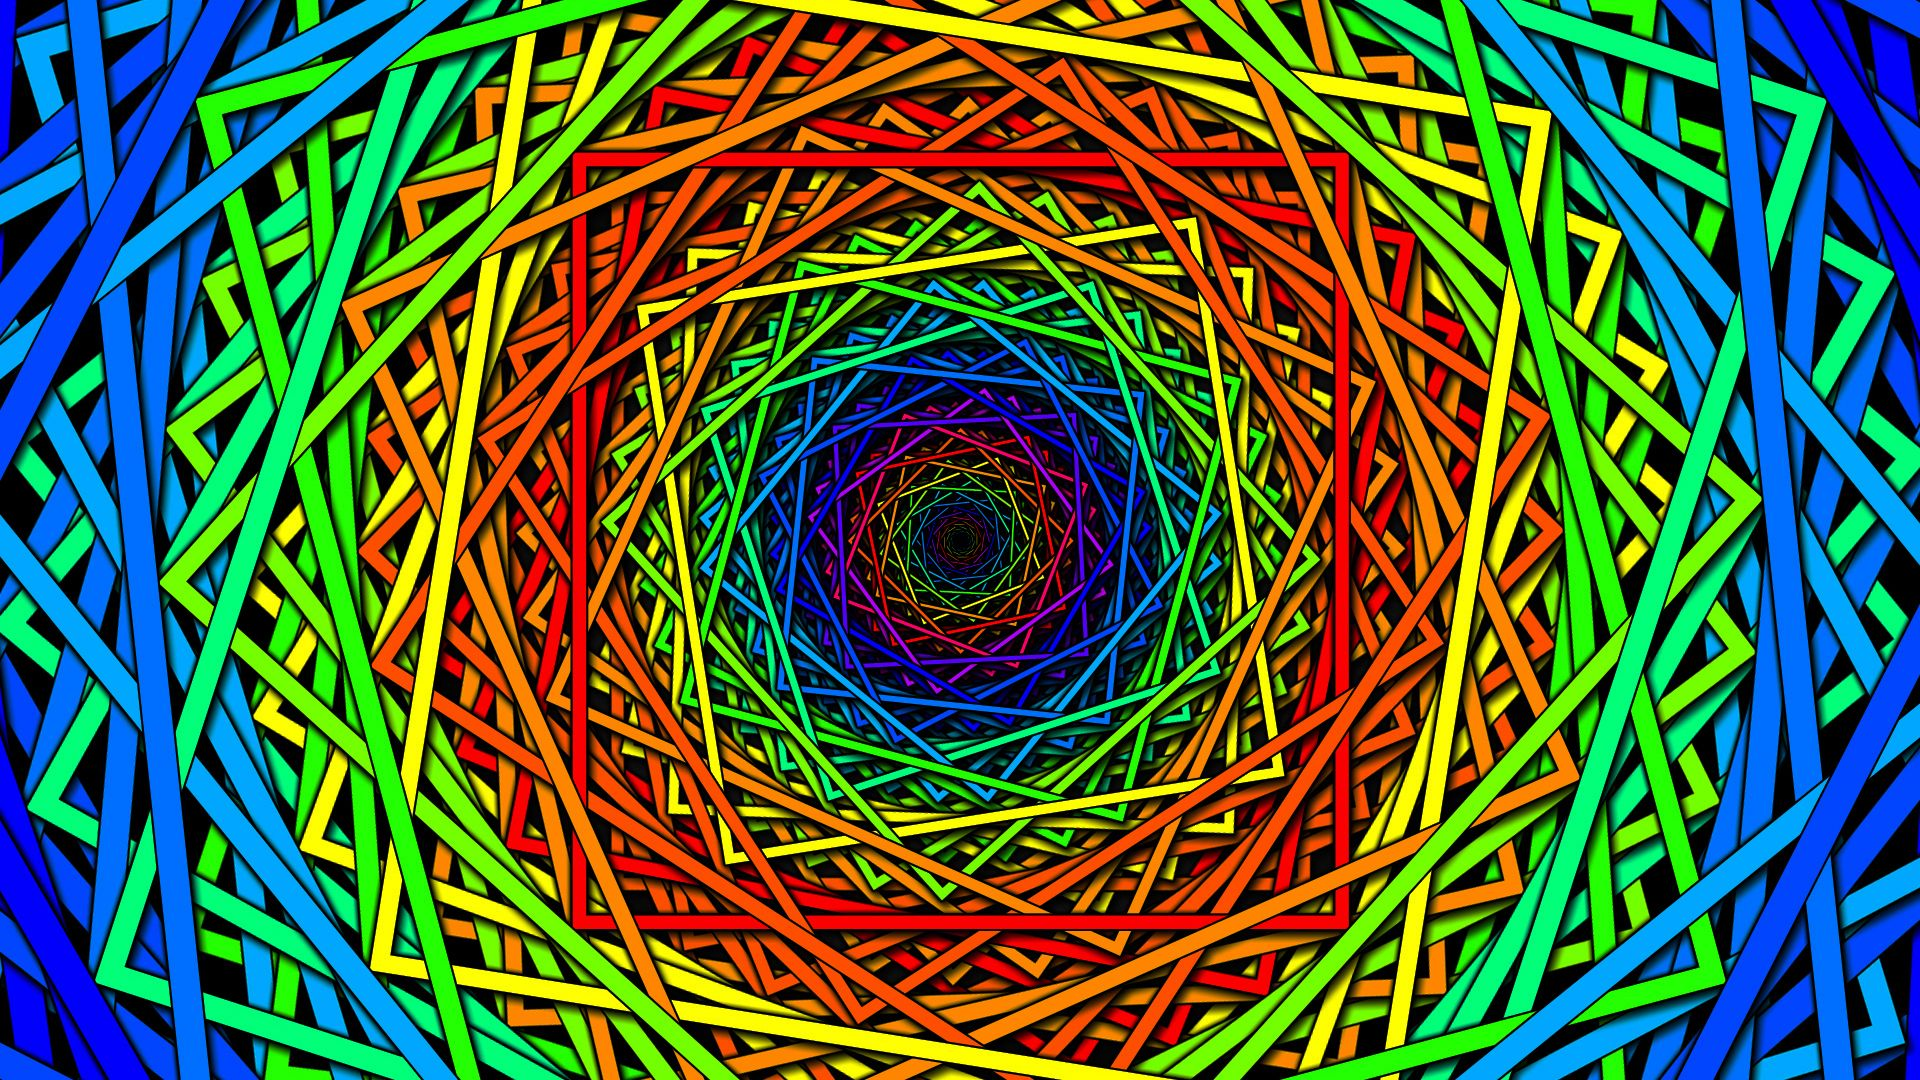 Backgrounds for Gt Psychedelic Wallpapers Desktop 1920x1080PX ...